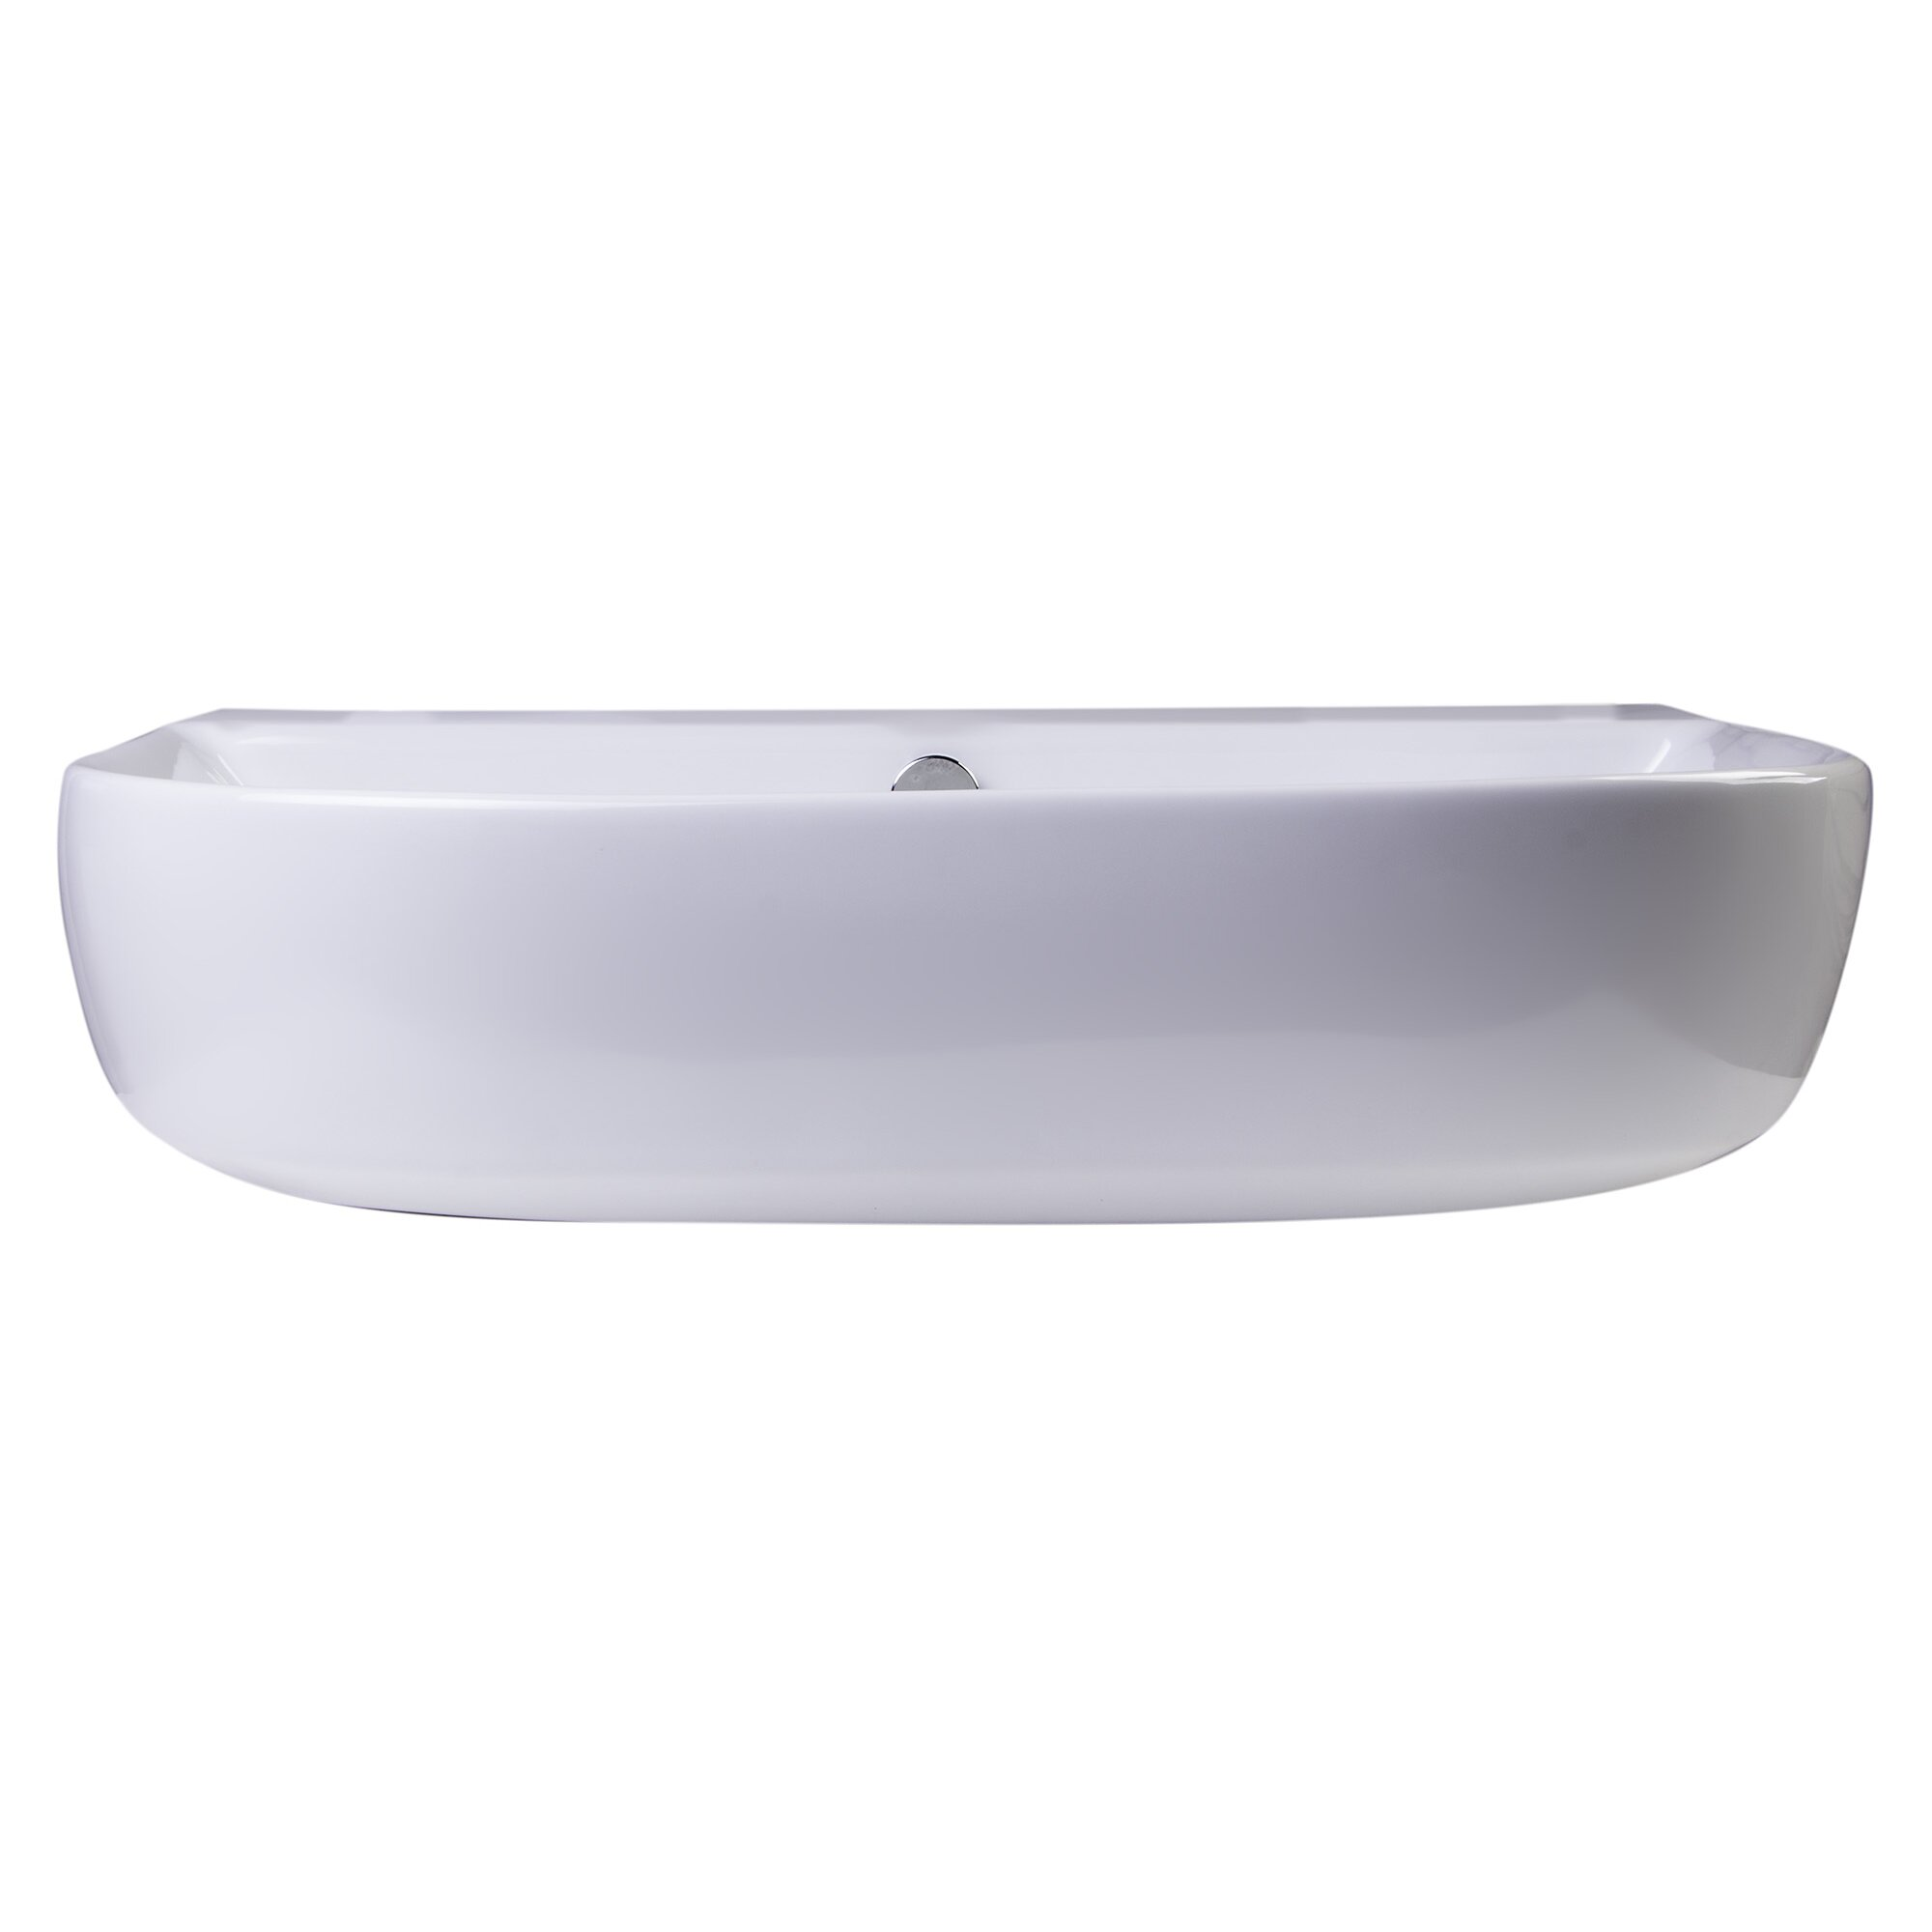 ... Bowl Porcelain Wall Mounted Bath Sink with Overflow by Alfi Brand